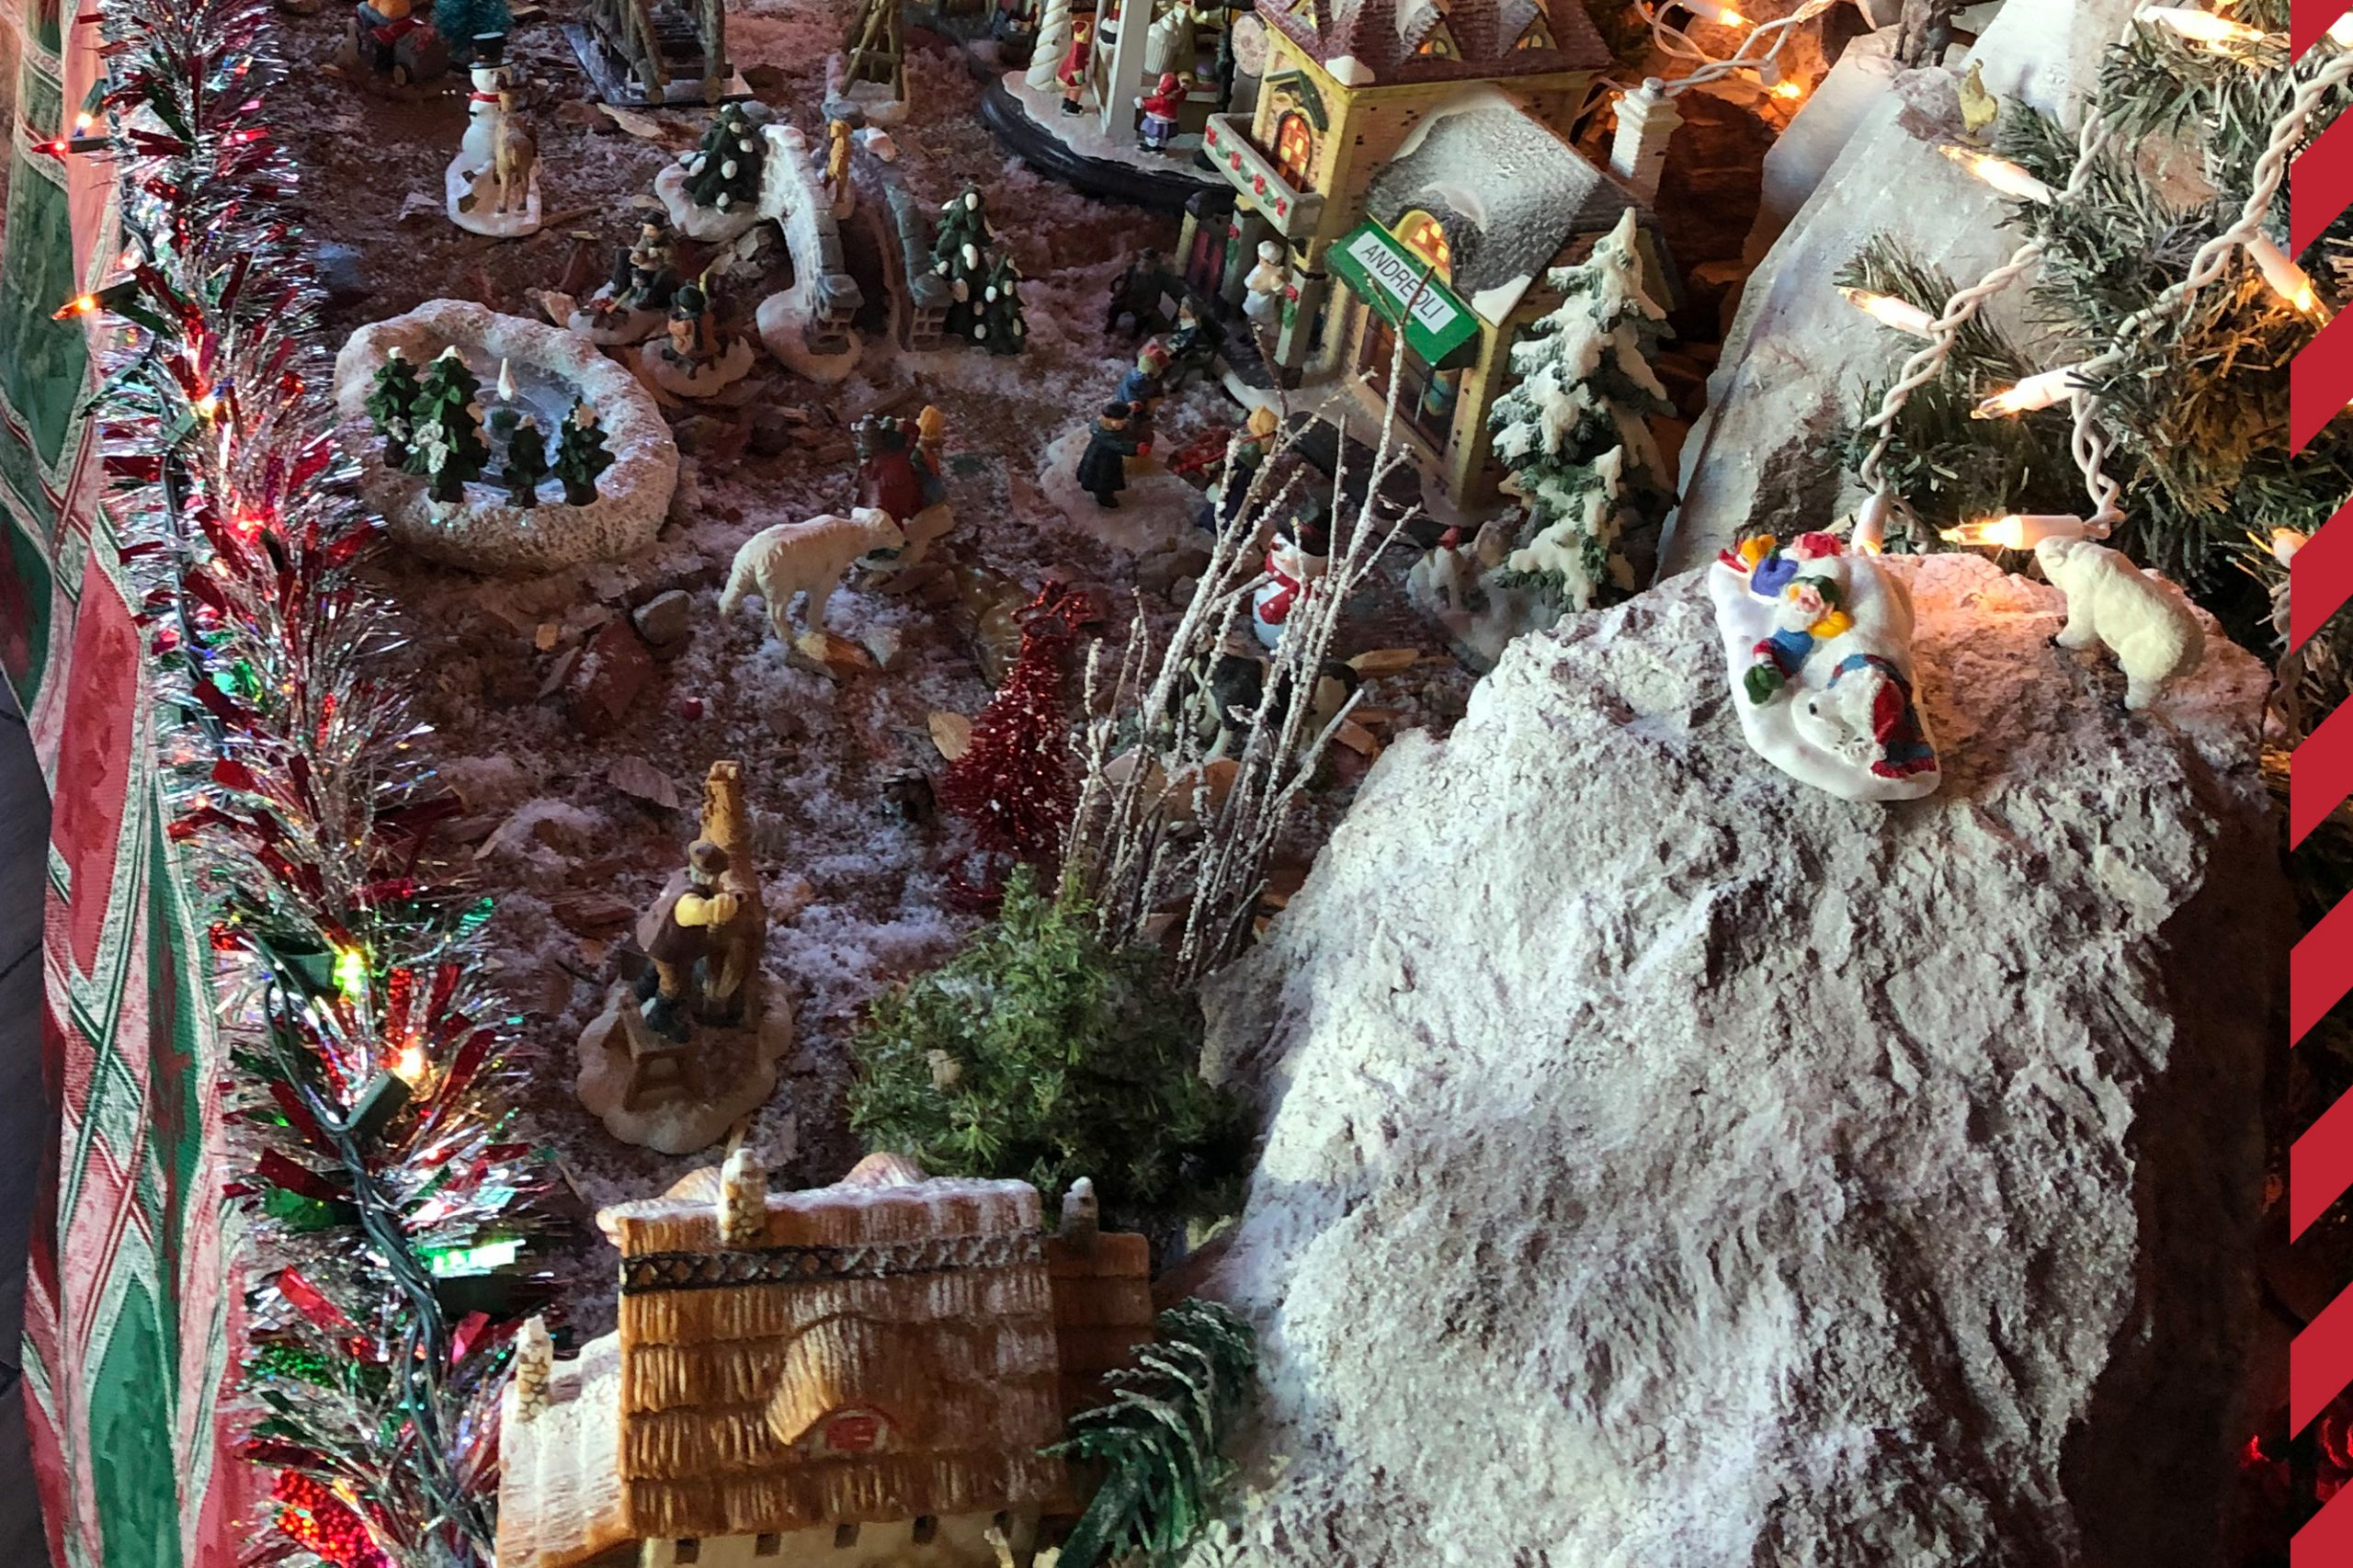 Miniature Snow Village and Nativity Scene at Andreoli Italian Grocer